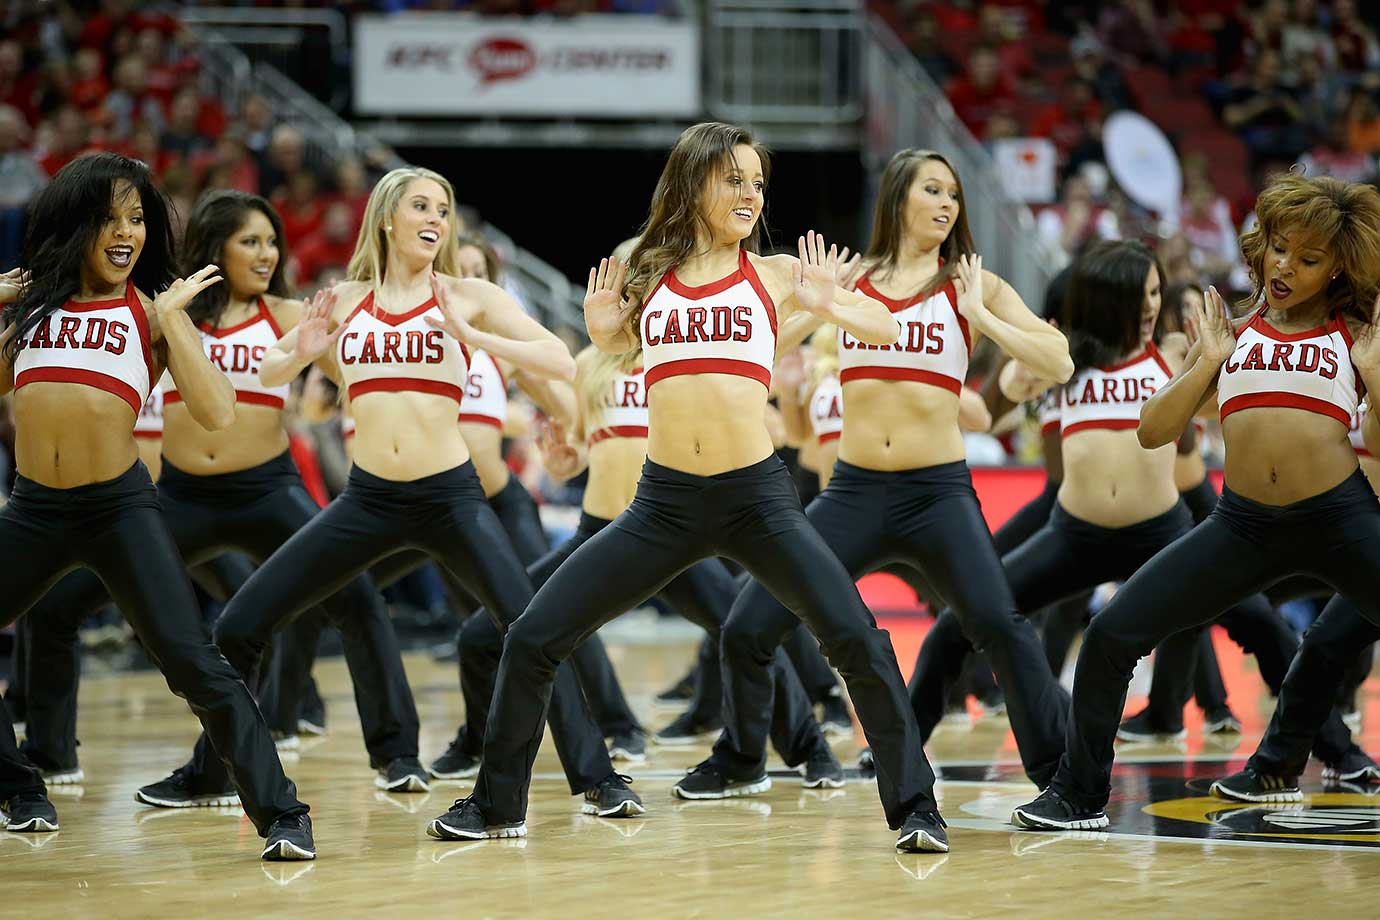 The Louisville Cardinals cheerleaders perform during their team's game against the Syracuse Orange.